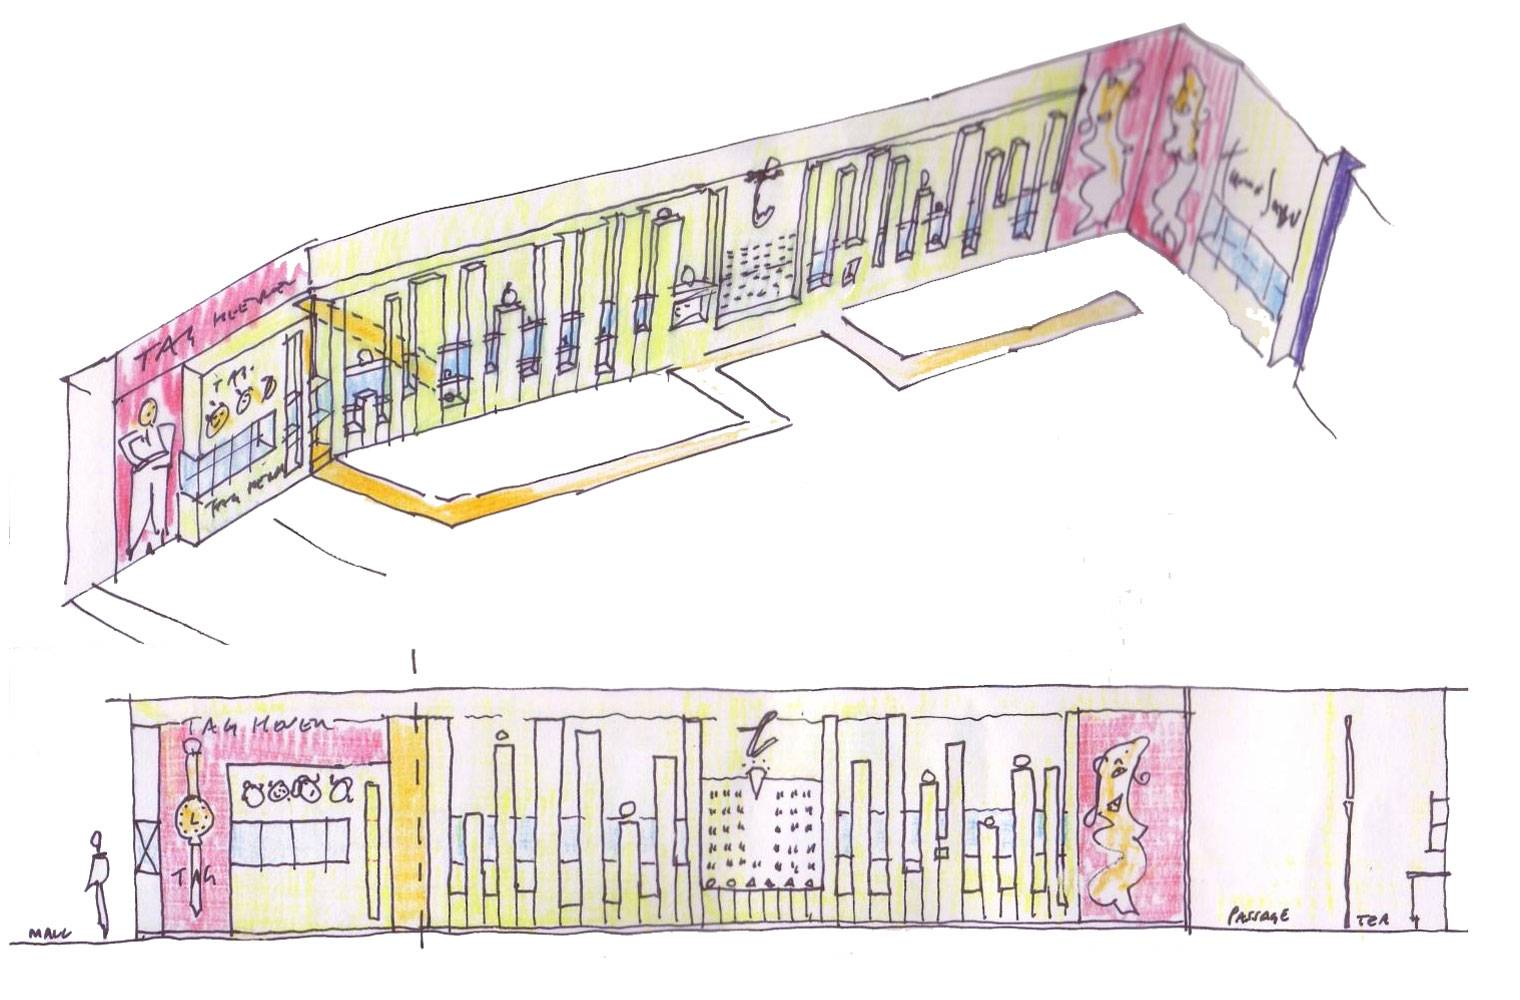 Tanur, Sandton City, Internal Unit Concept Sketch